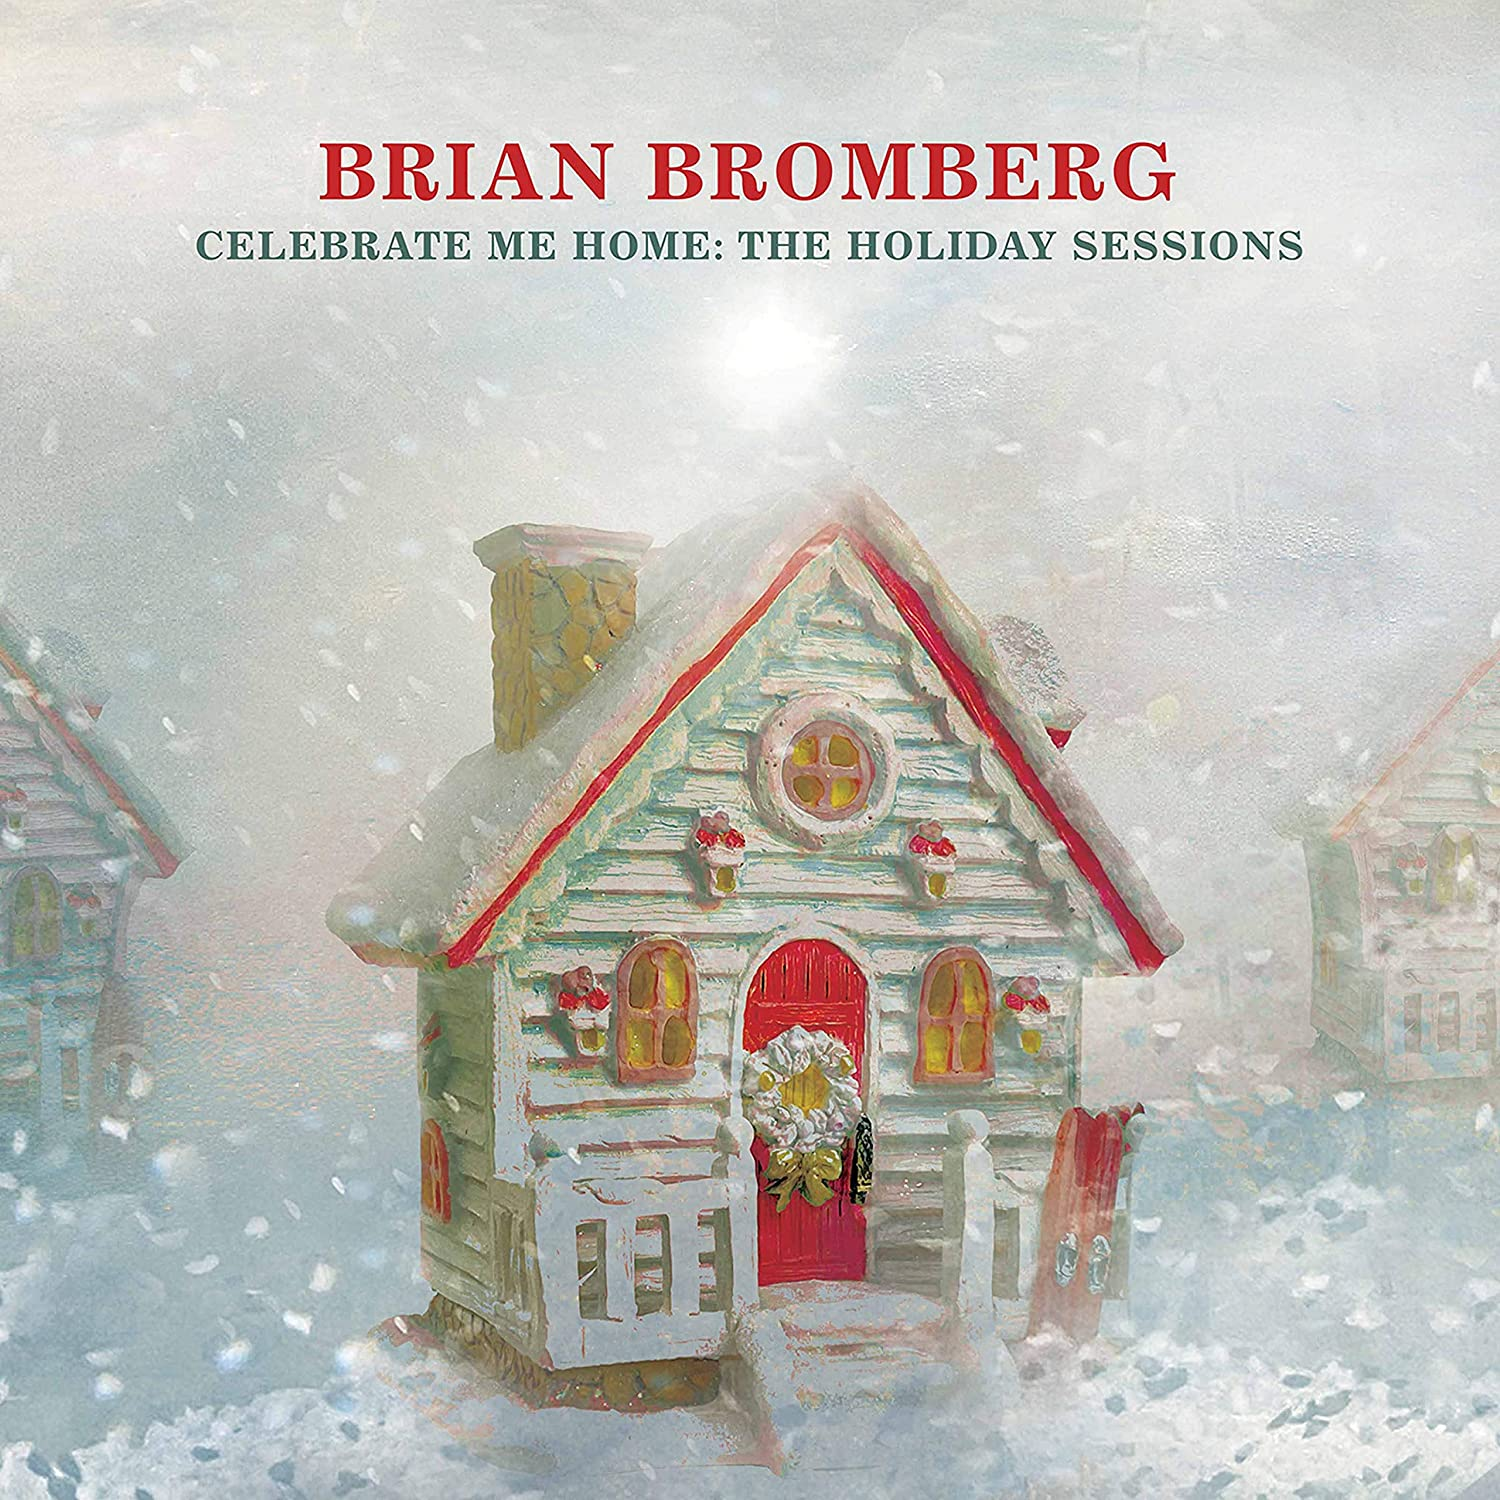 Brian Bromberg - Celebrate Me Home: The Holiday Sessions - Amazon.com Music